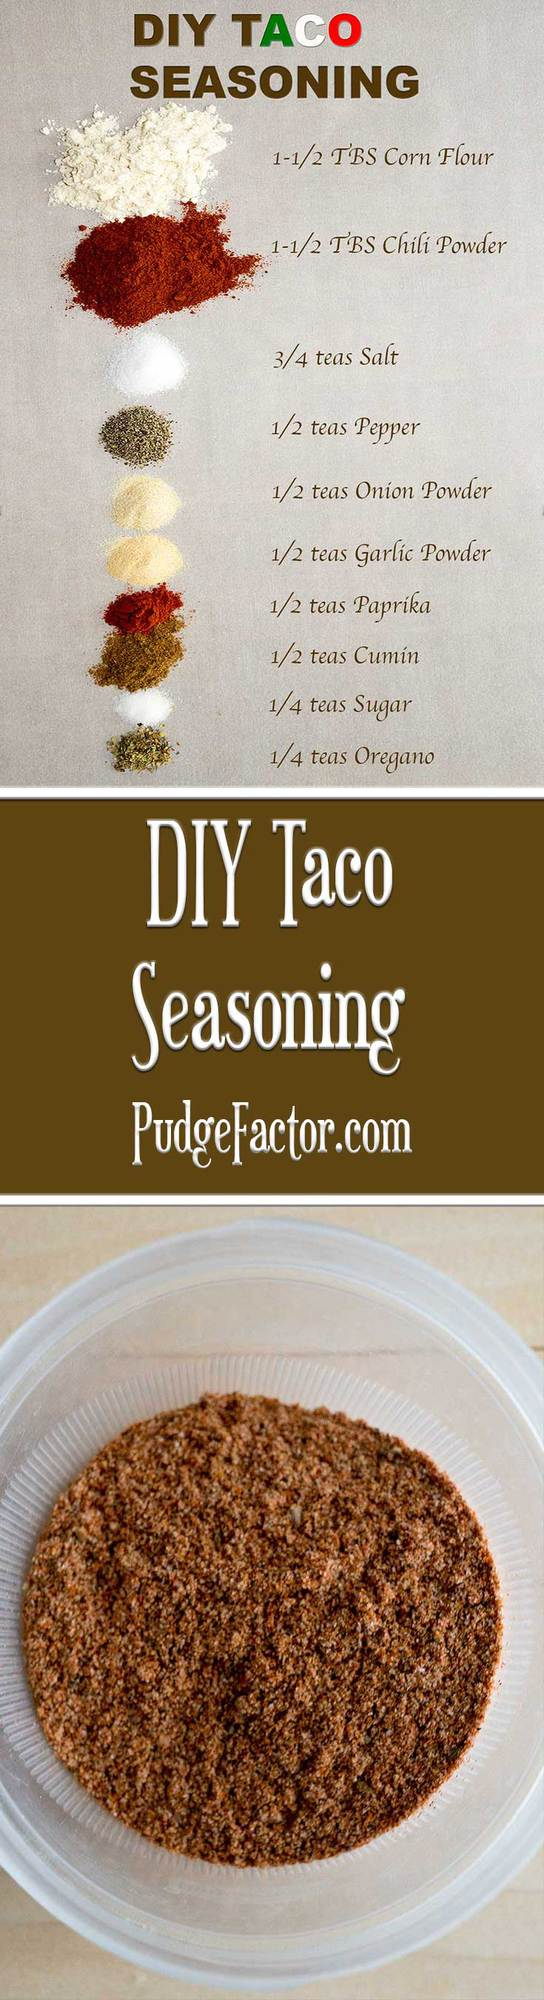 DIY Taco Seasoning is the perfect blend of spices. It's ready in minutes, contains no preservatives, and is lower in sodium than the packets you buy in the store.